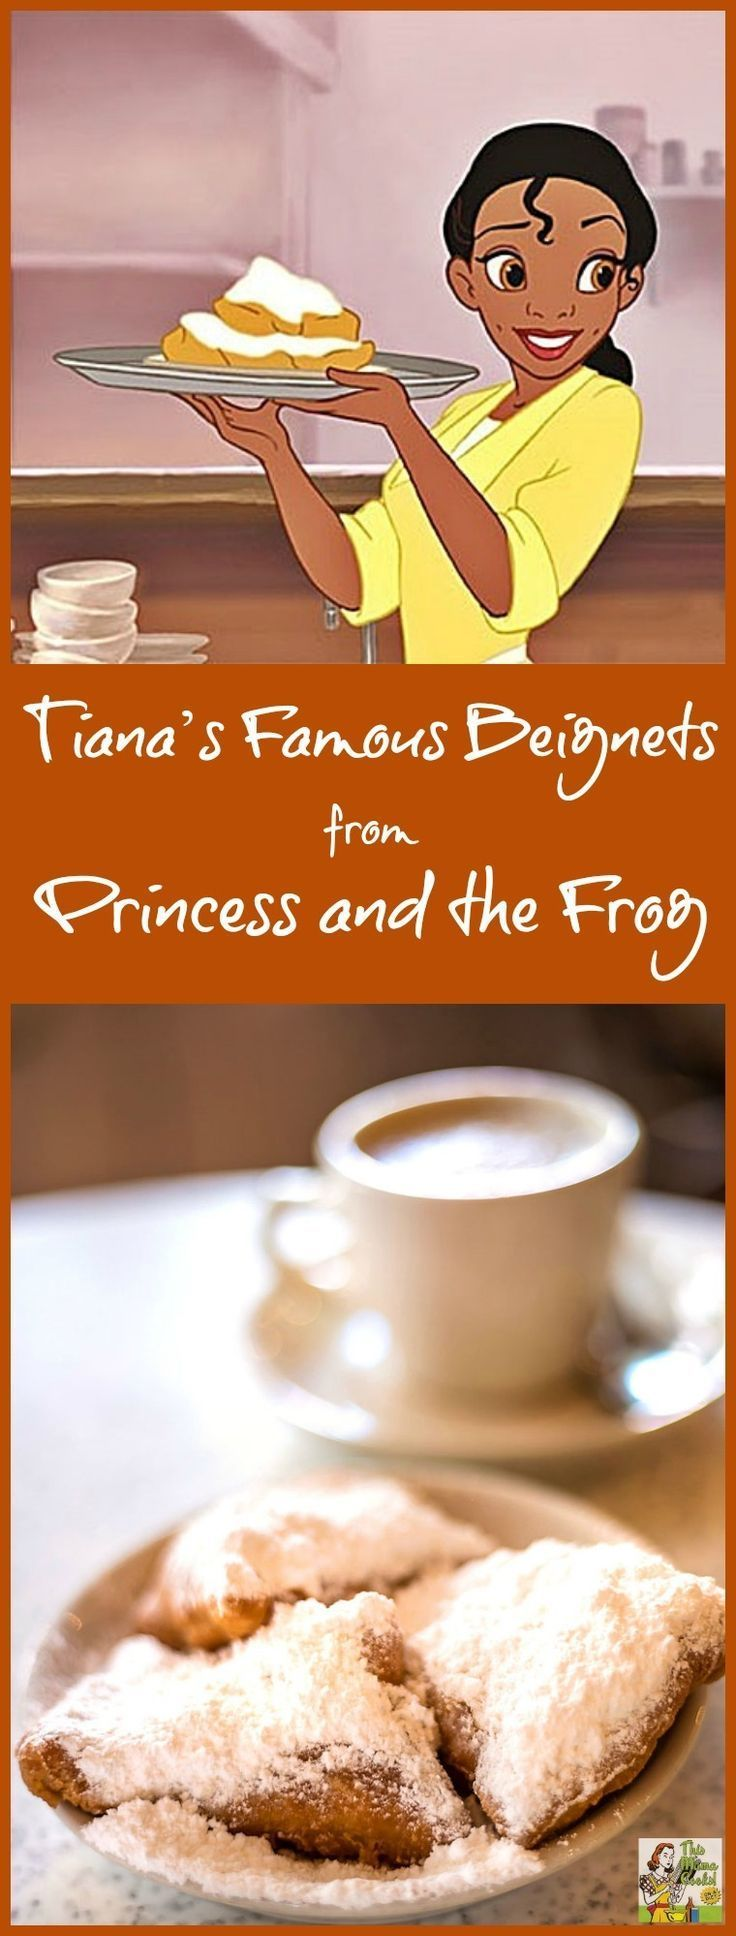 Are you looking for an beignet recipe like they make in New Orleans? Try  Tiana's Famous Beignets recipe from the Princess and the Frog movie and cookbook!